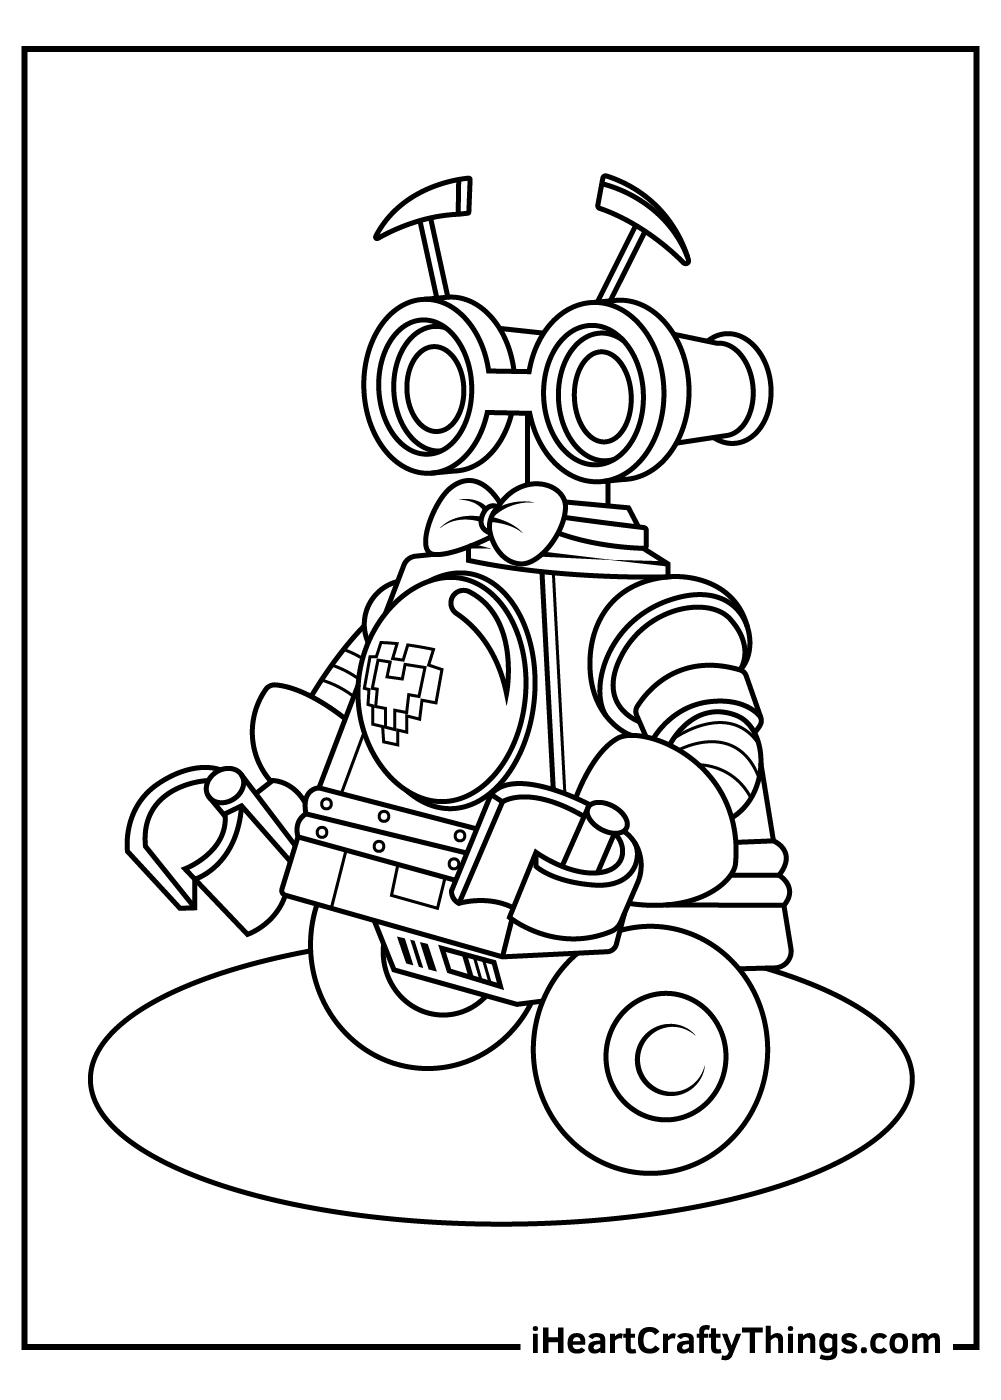 zobo lego friends coloring pages free download